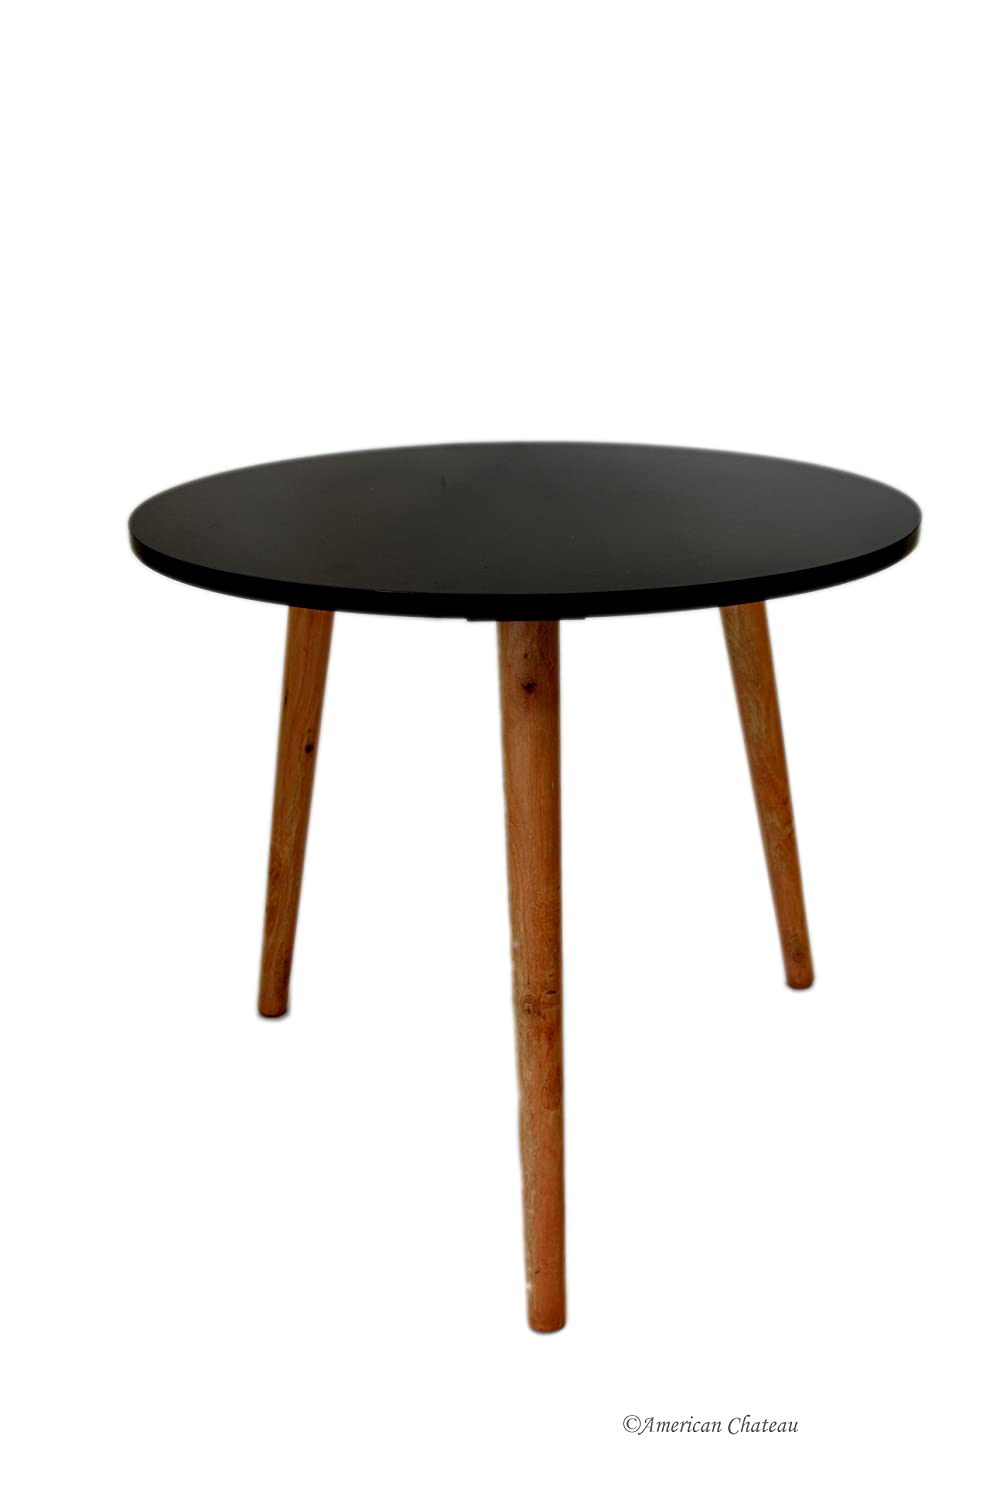 Retro Mid Century Modern Danish-Style Black Wood & Melamine Accent Side Table American Chateau